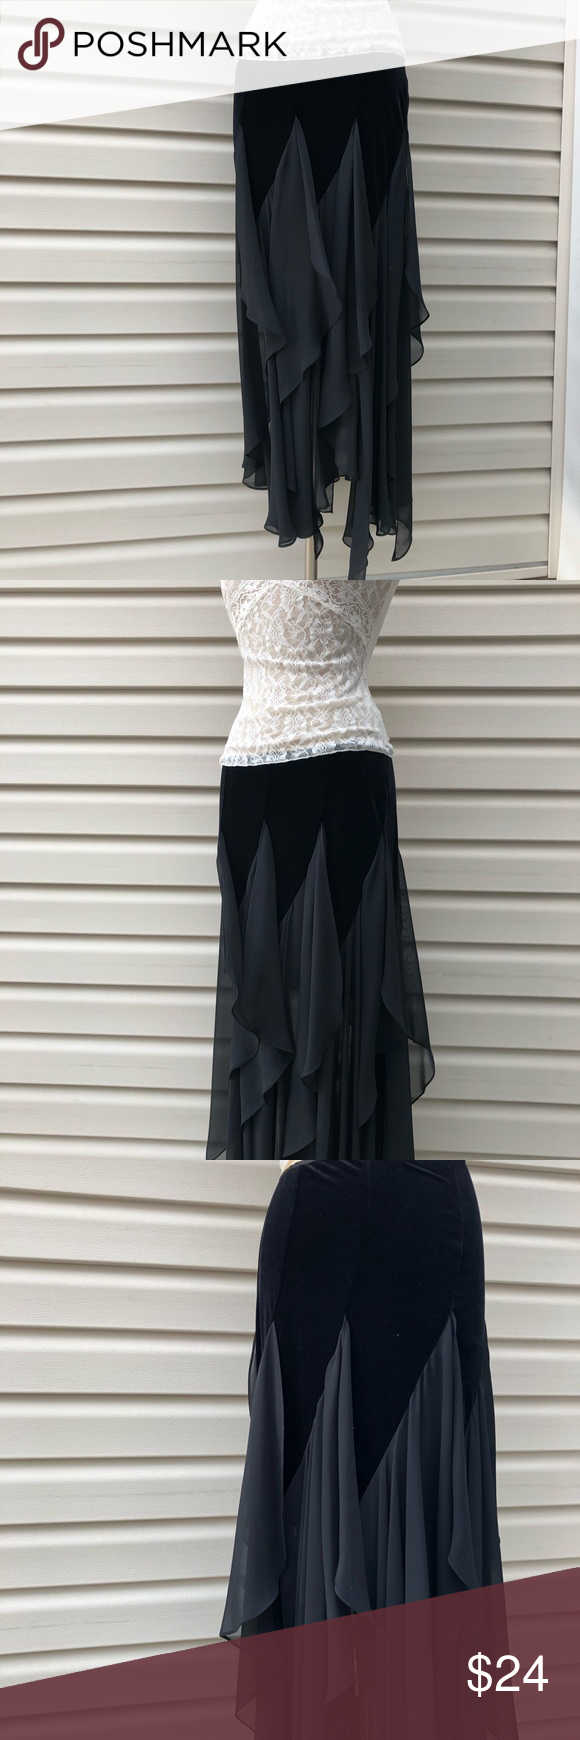 J.R. Nites velvet and sheer maxi skirt Beautiful skirt, the